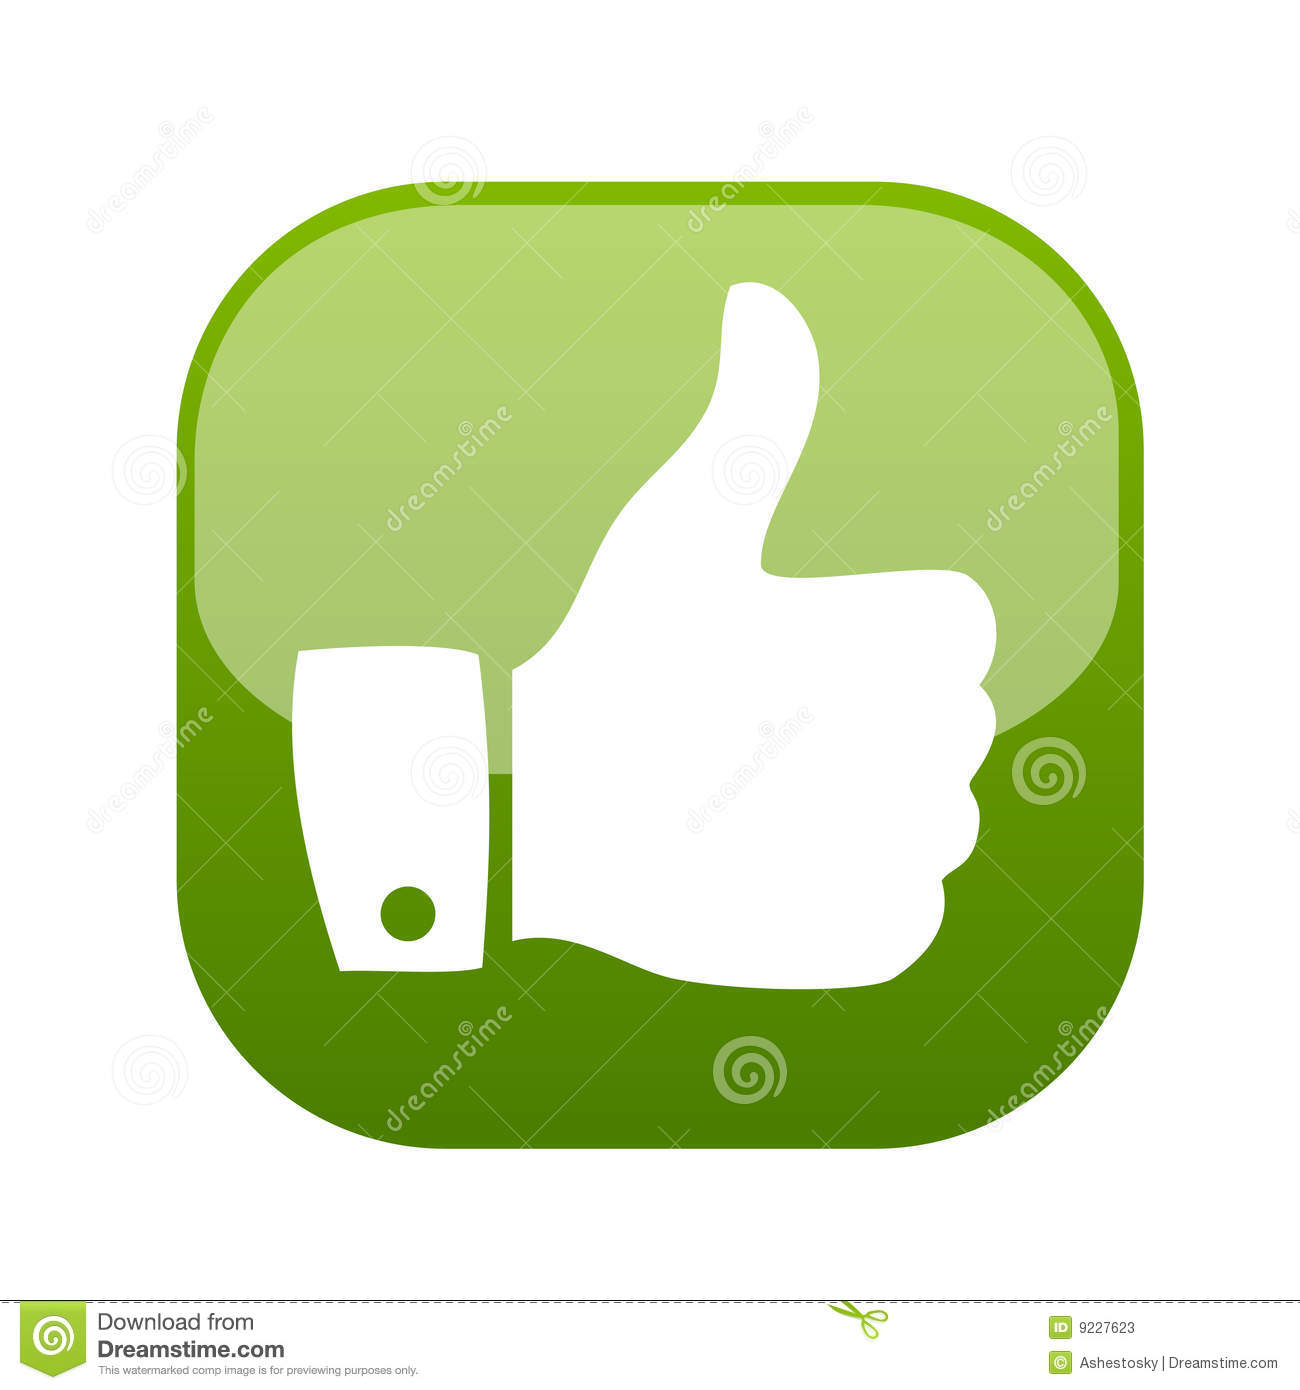 http://thumbs.dreamstime.com/z/thumb-up-gesture-icon-vector-9227623.jpg